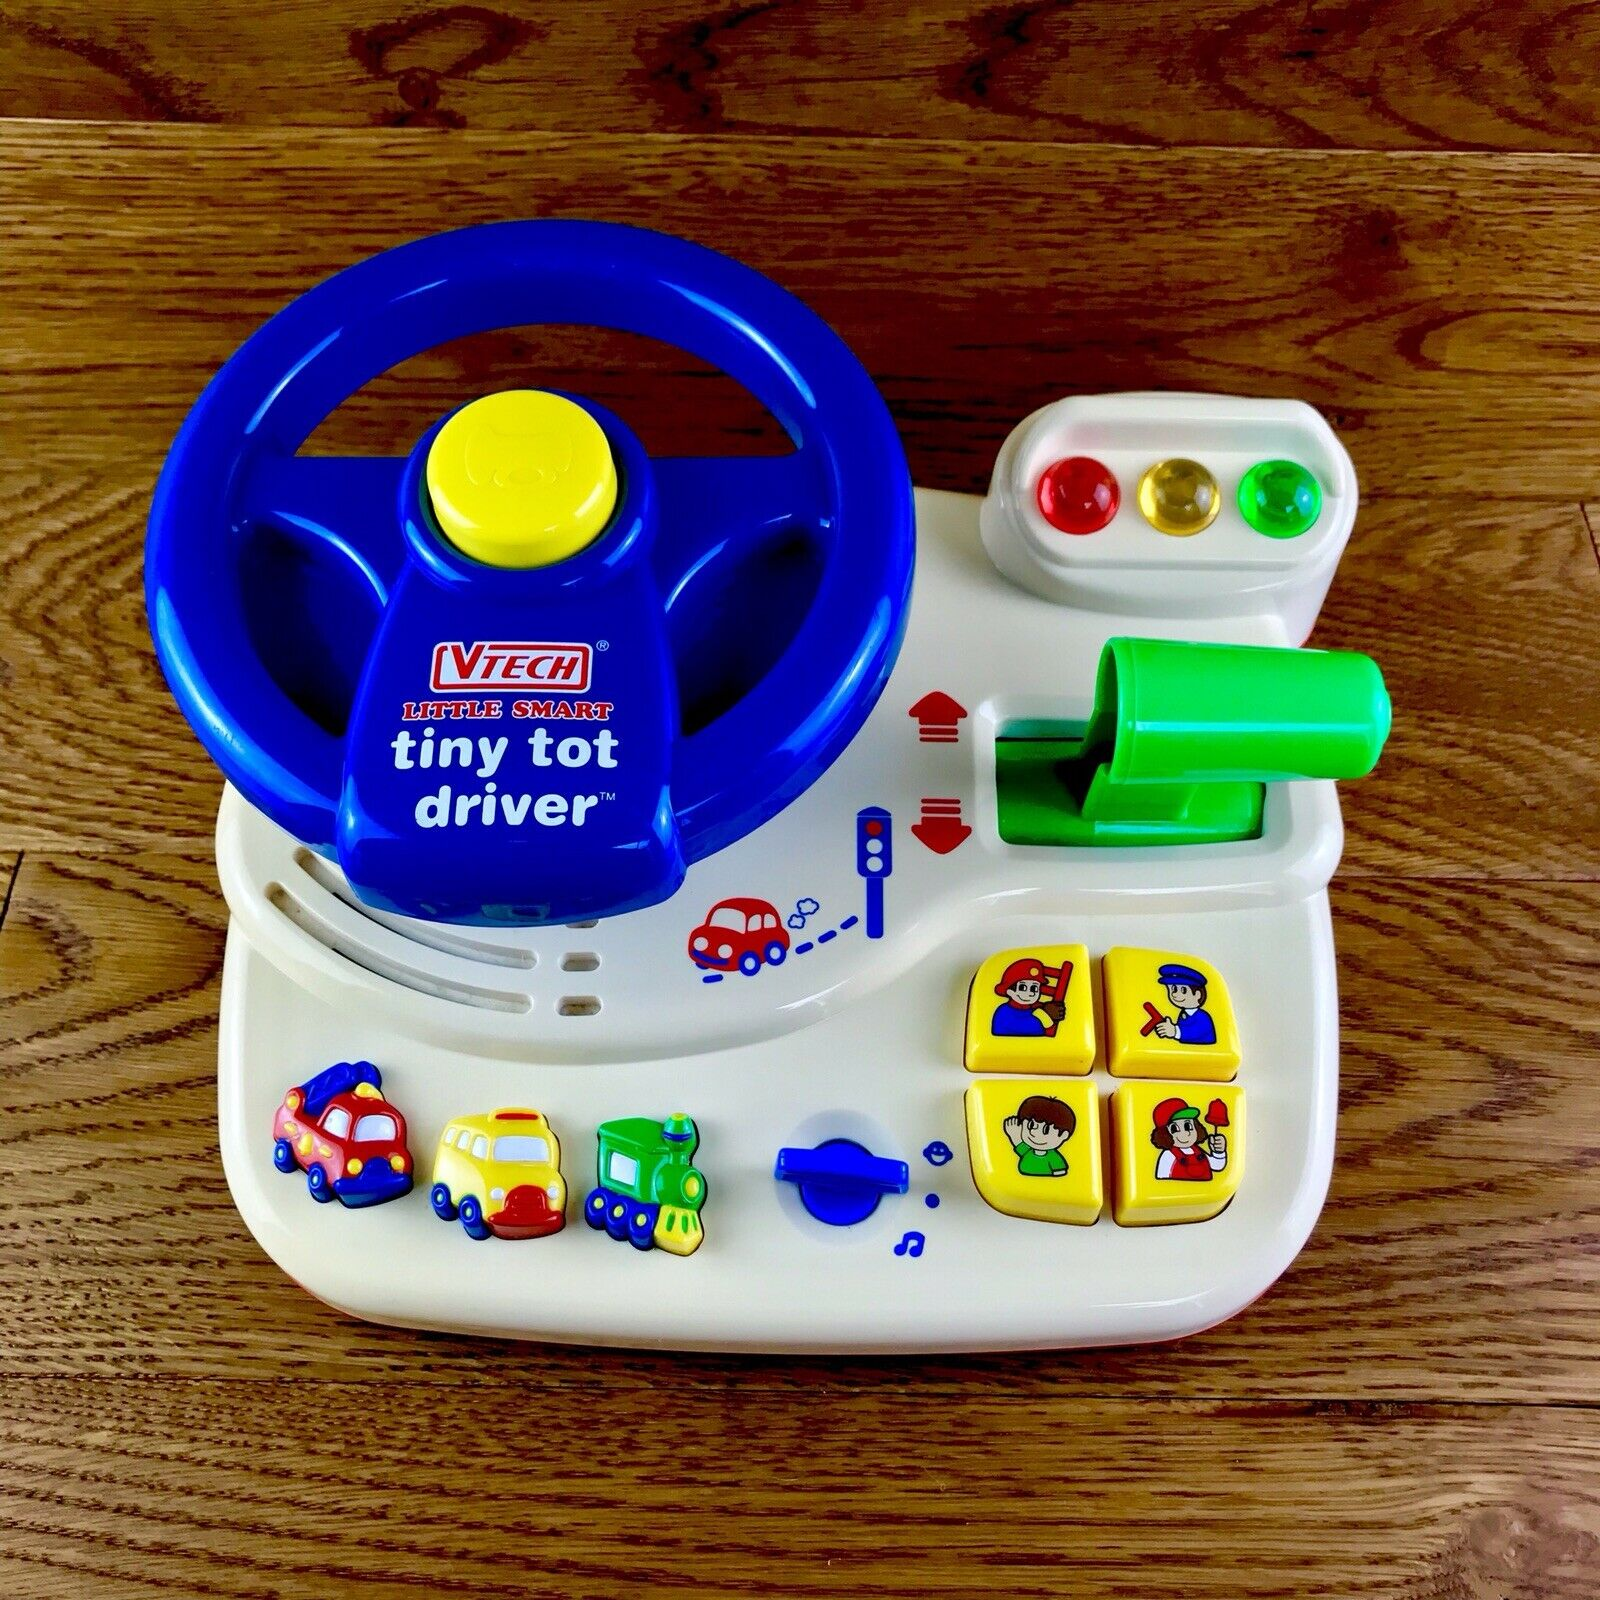 Vtech Little Smart Tiny Tot Driver Vintage Toys Superb Condition Fully Working